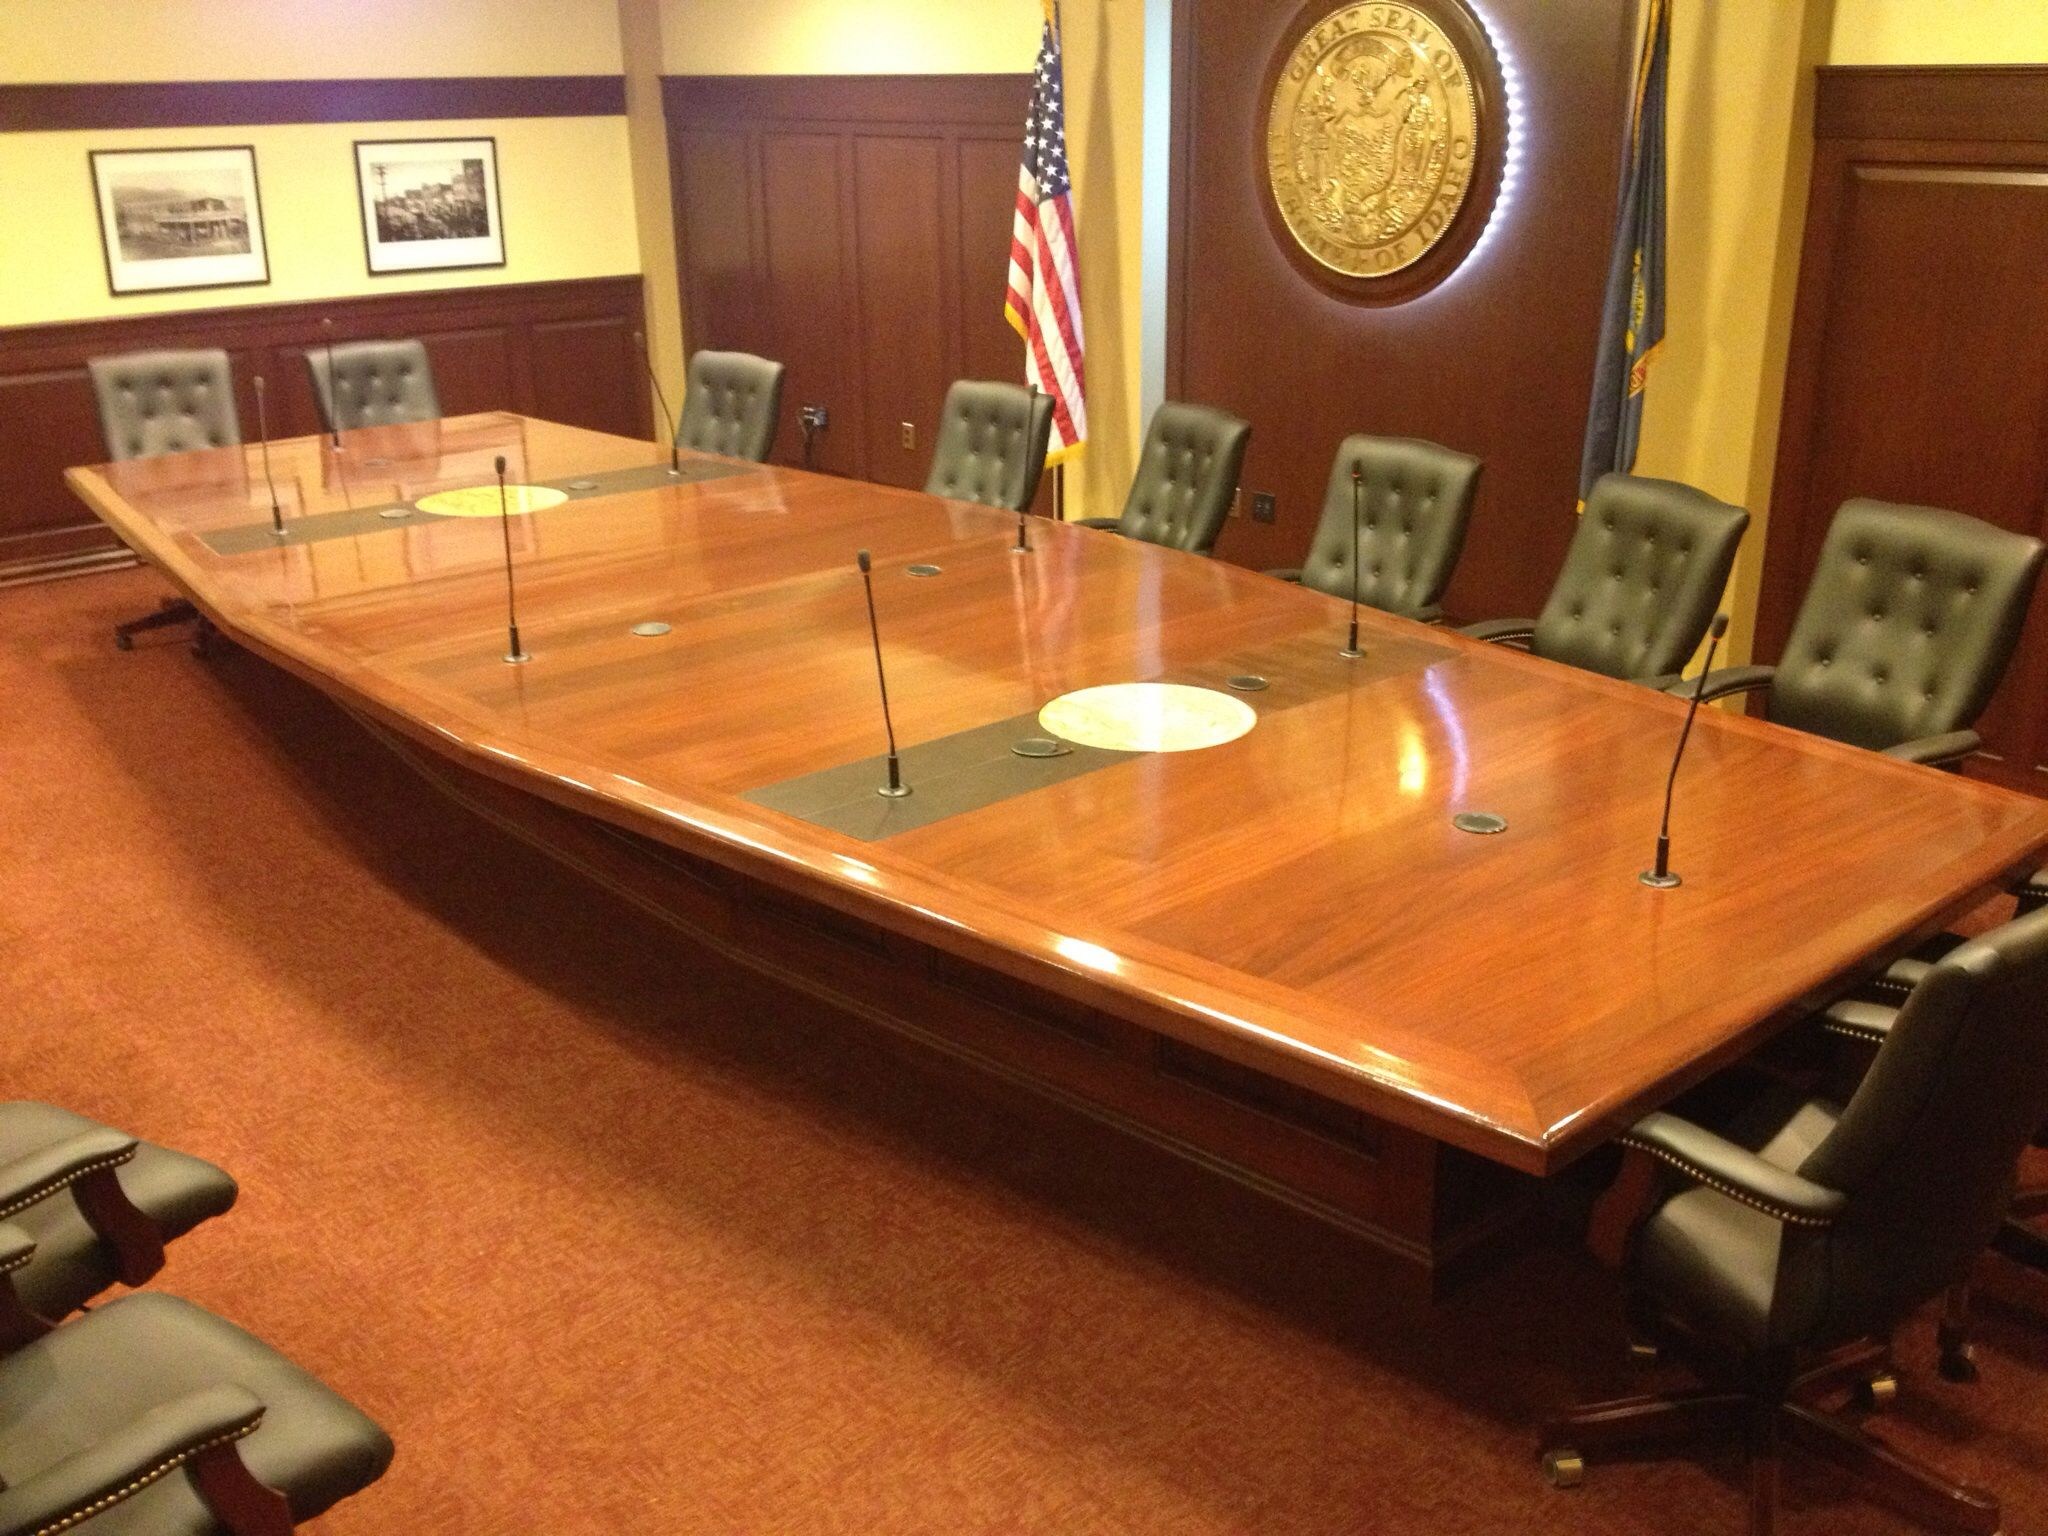 Conferenc table at idaho state capital Work by rastephan Boise, ID